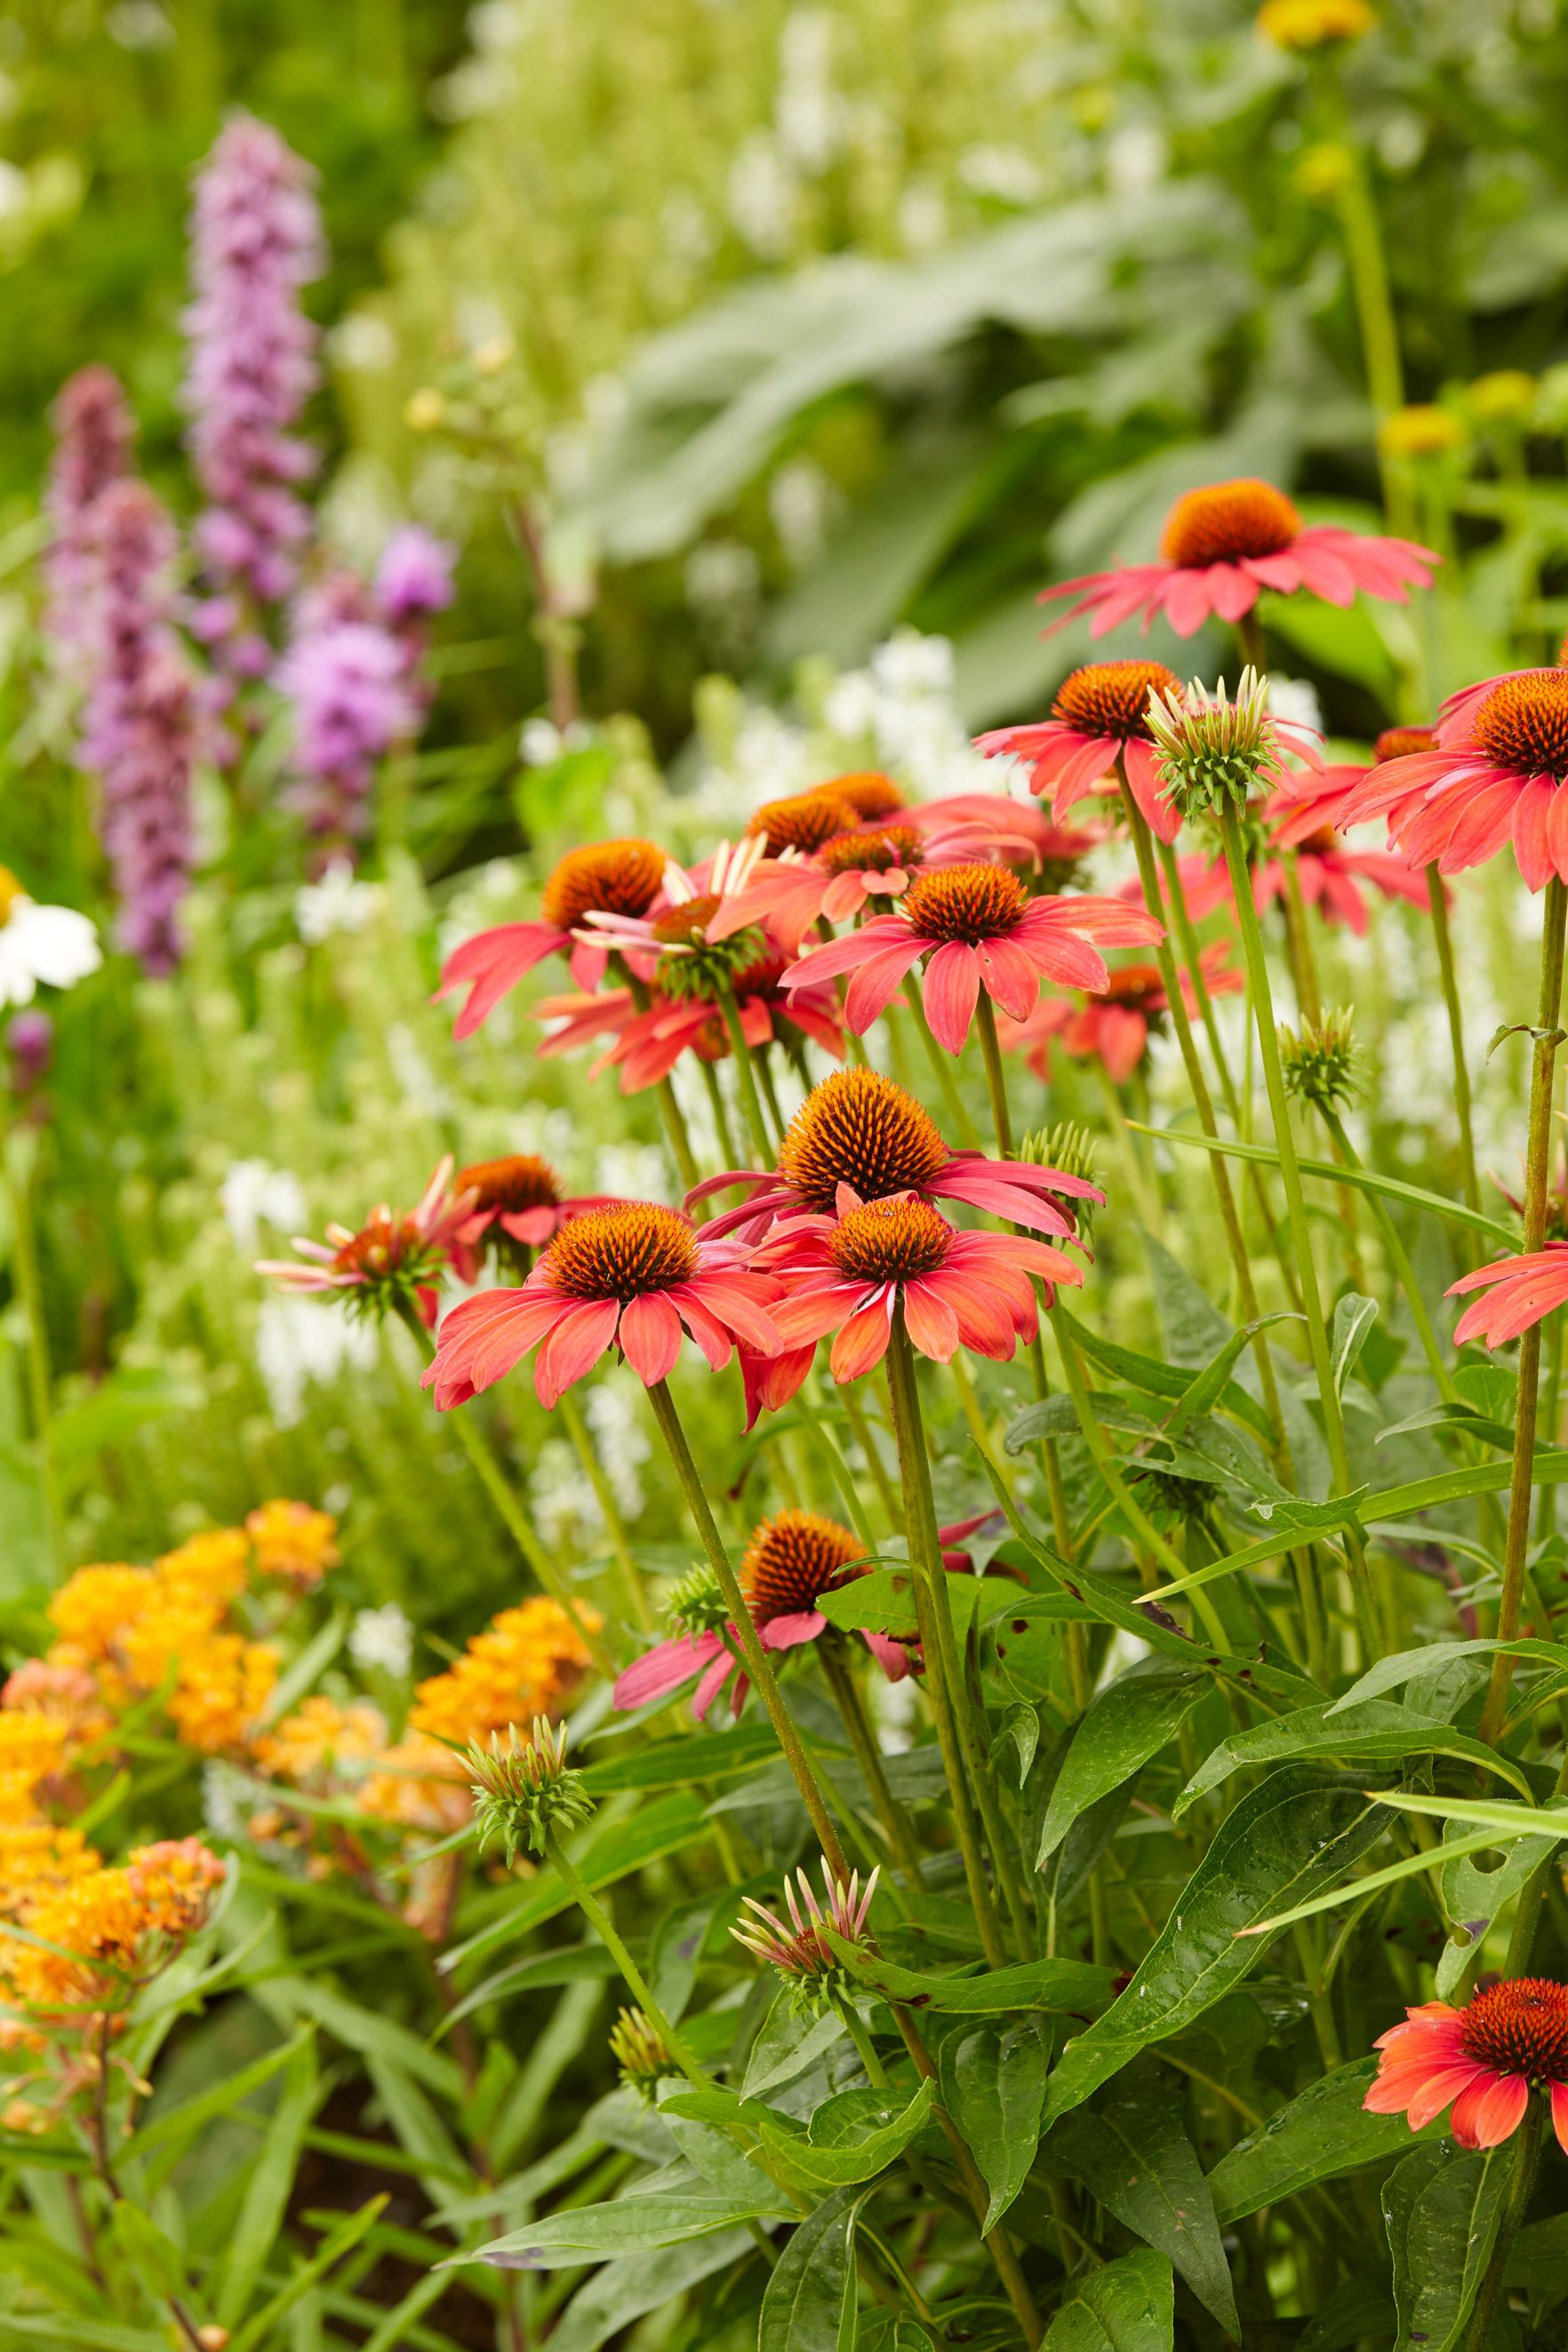 Echinacea Guide Planting Pruning And Caring For Coneflowers Garden Therapy Pollinator Plants Herbal Tea Garden Plants